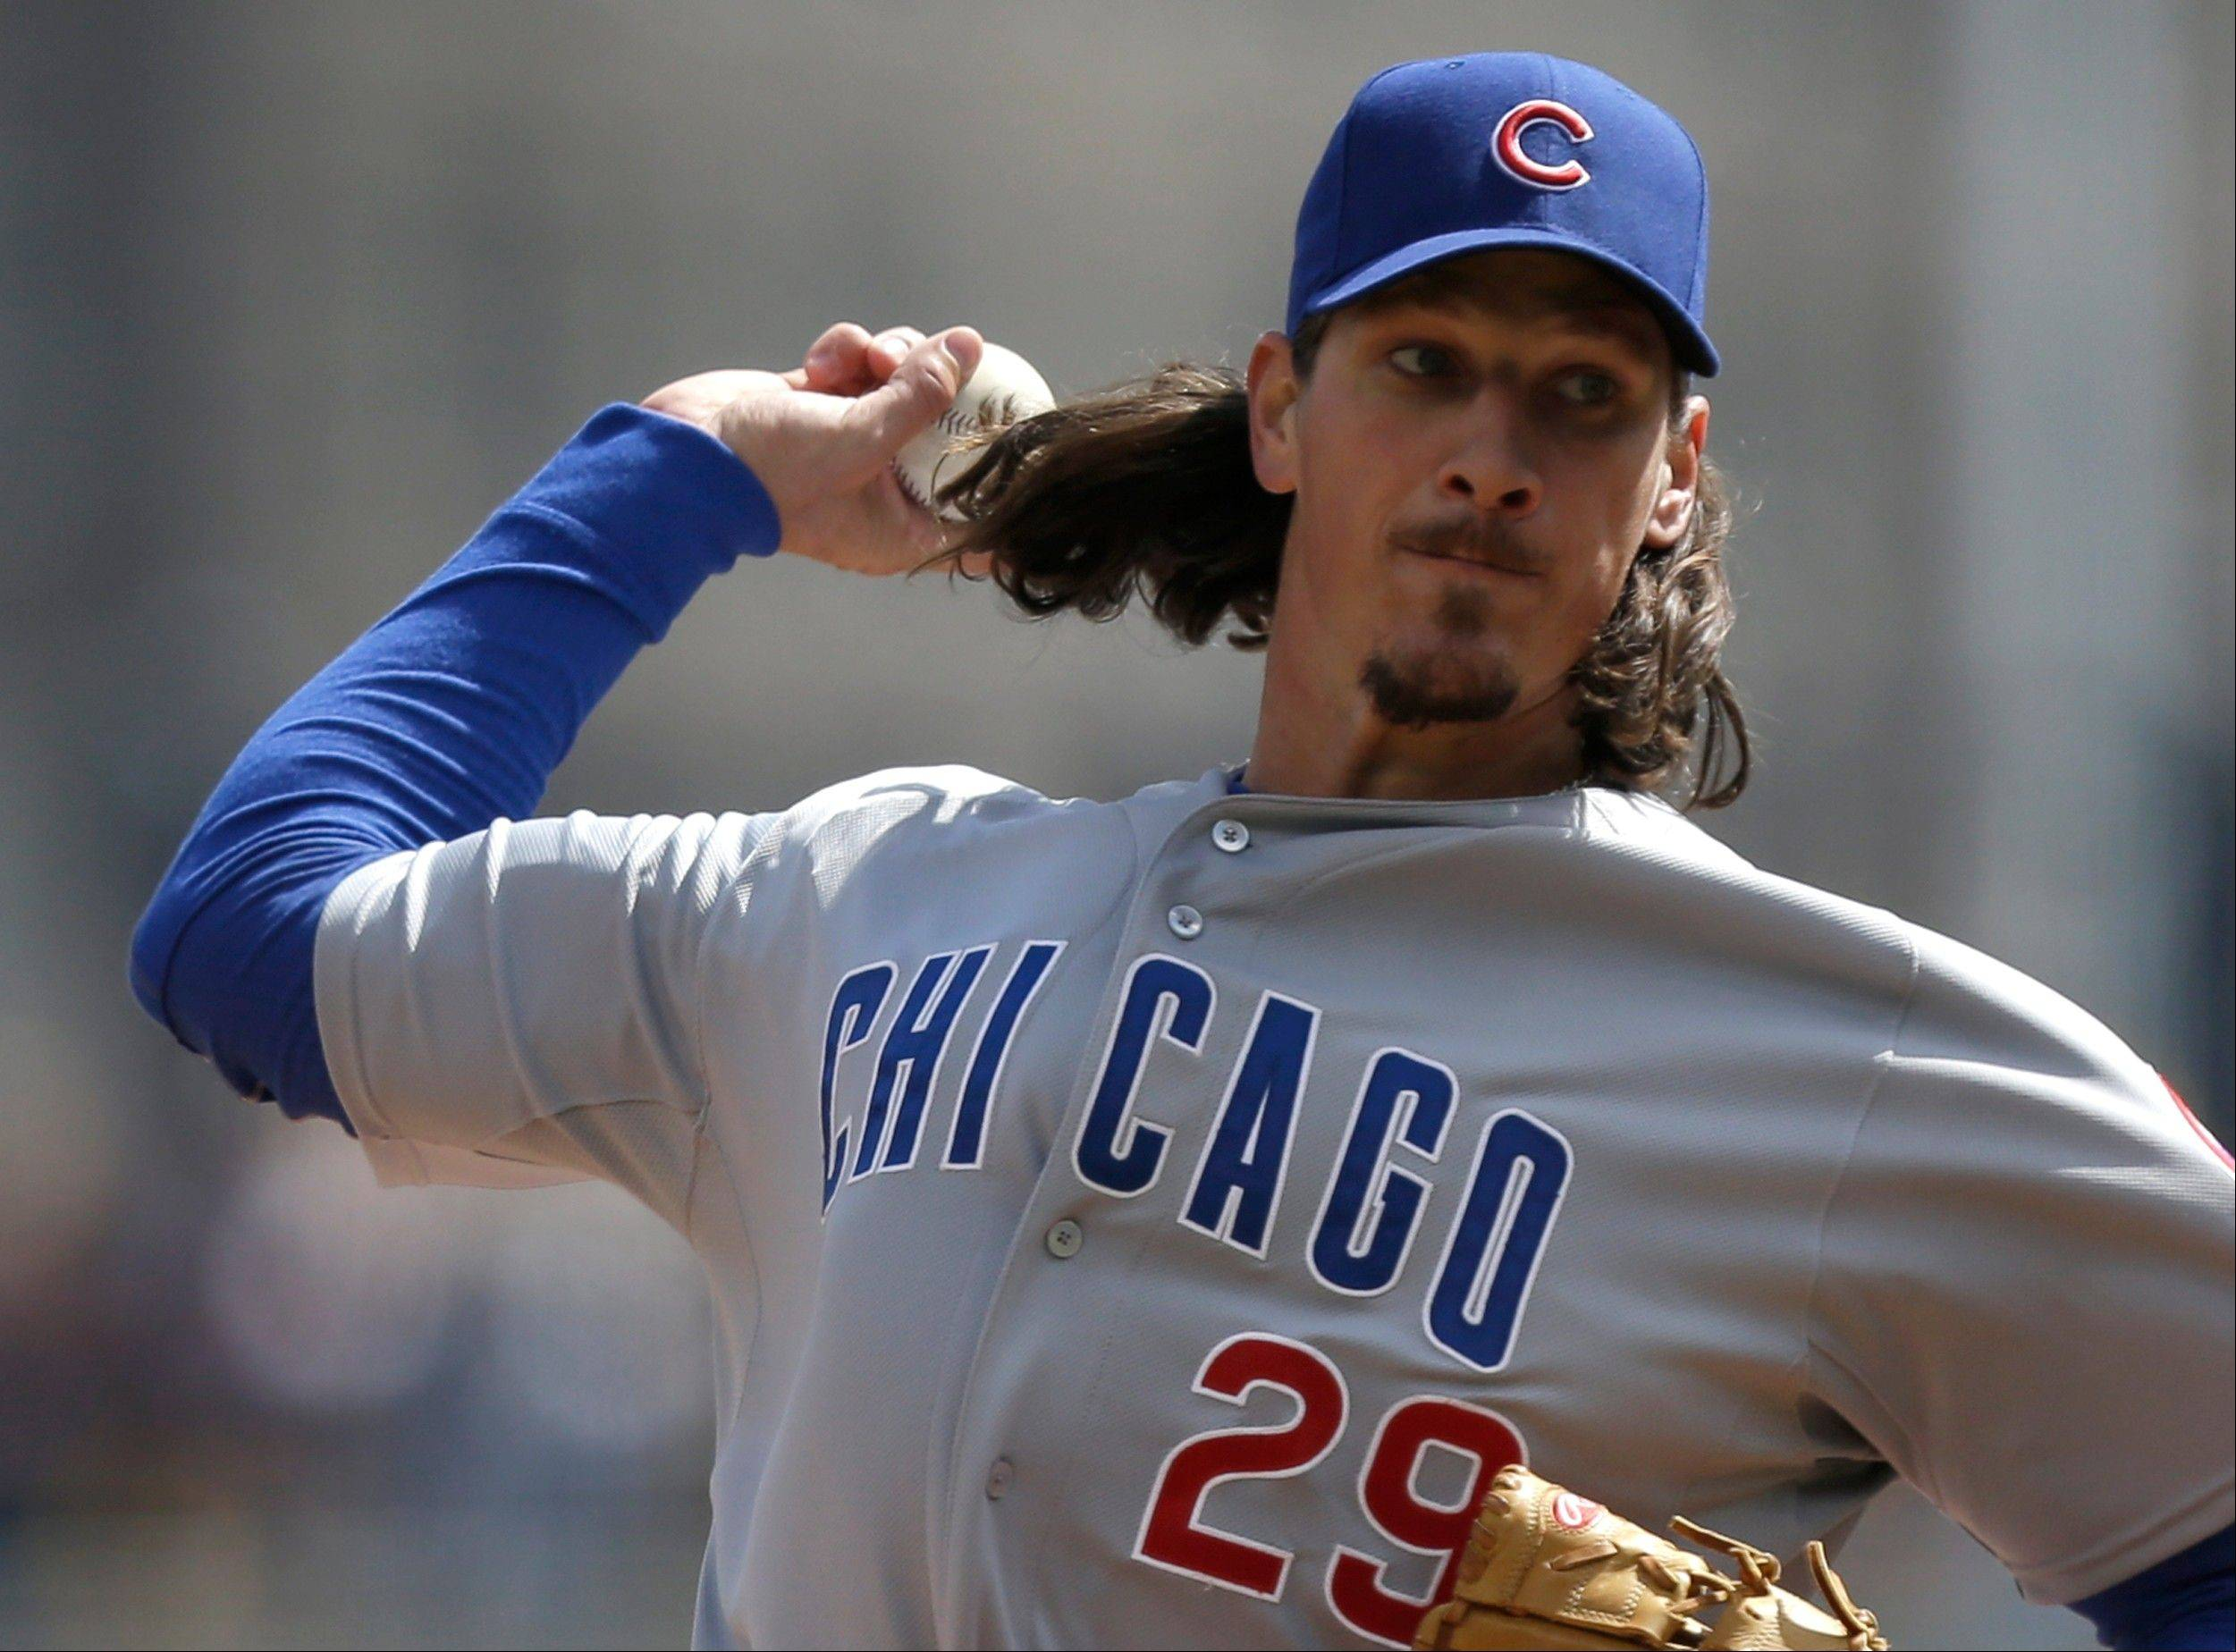 Jeff Samardzija, who will be a free agent after the 2015 season, could be a player that GM Theo Epstein looks to deal at some point.